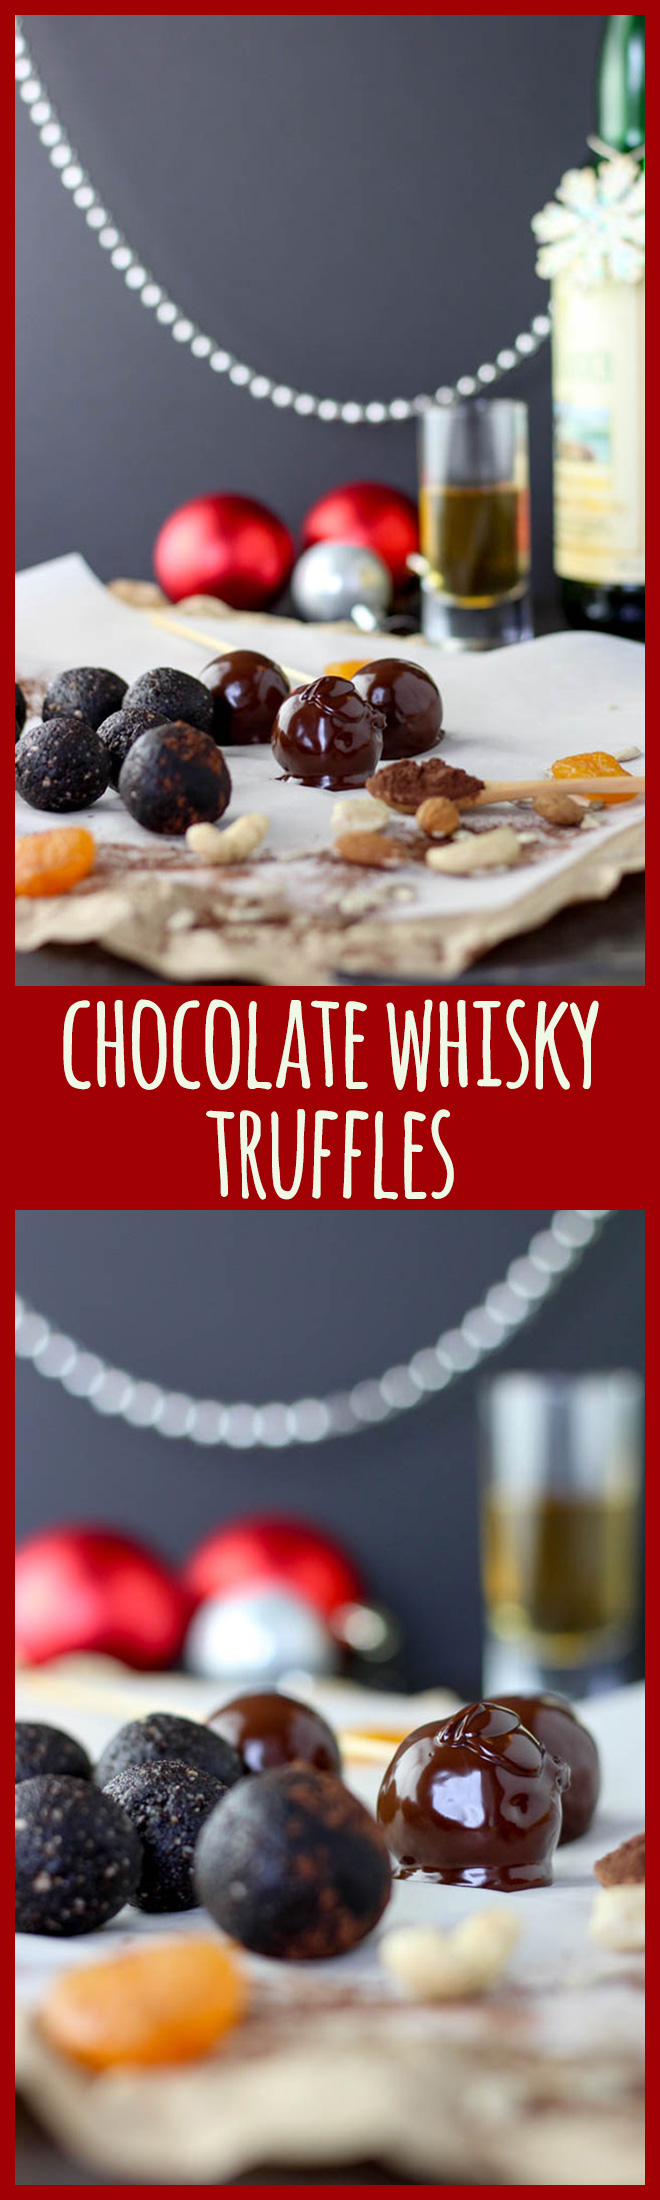 These truffles are Decadent with capital D. Dark and chocolatey, moist and very adult with the flavour of a good single malt whisky running through them. Just what Santa ordered.